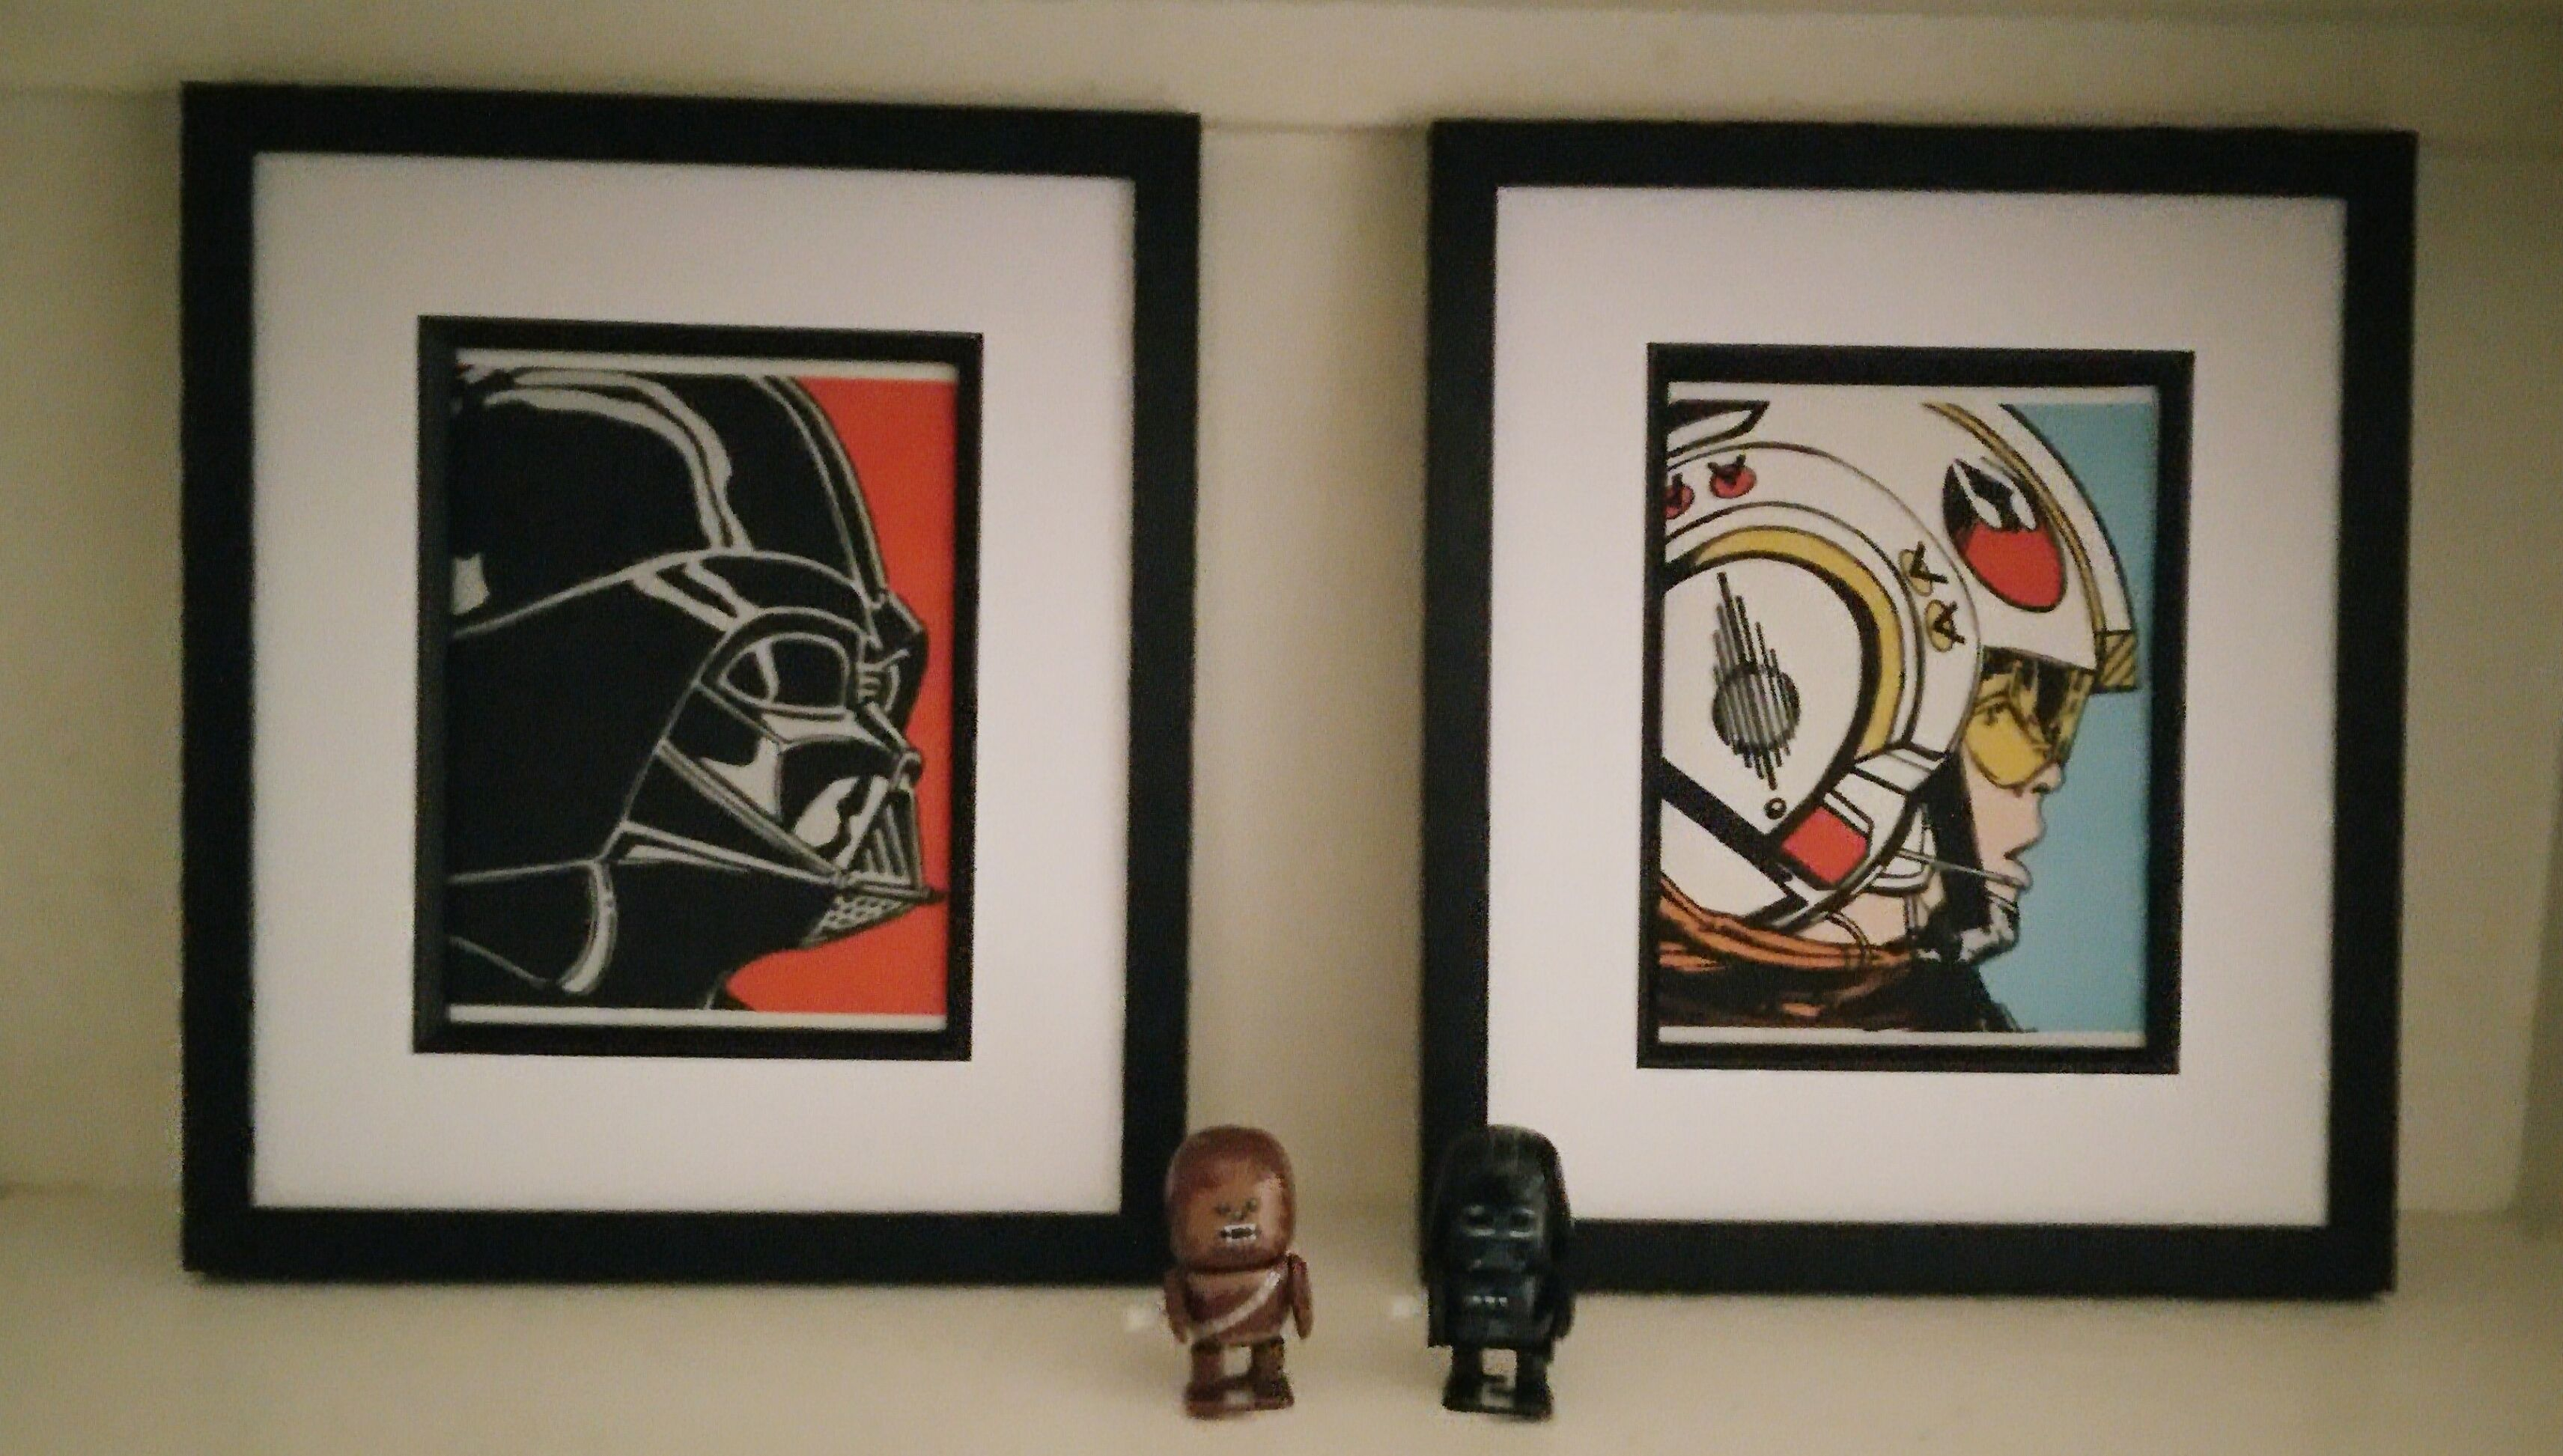 Framed Star Wars Darth Vader Fabric Artwork Fan Art Movie